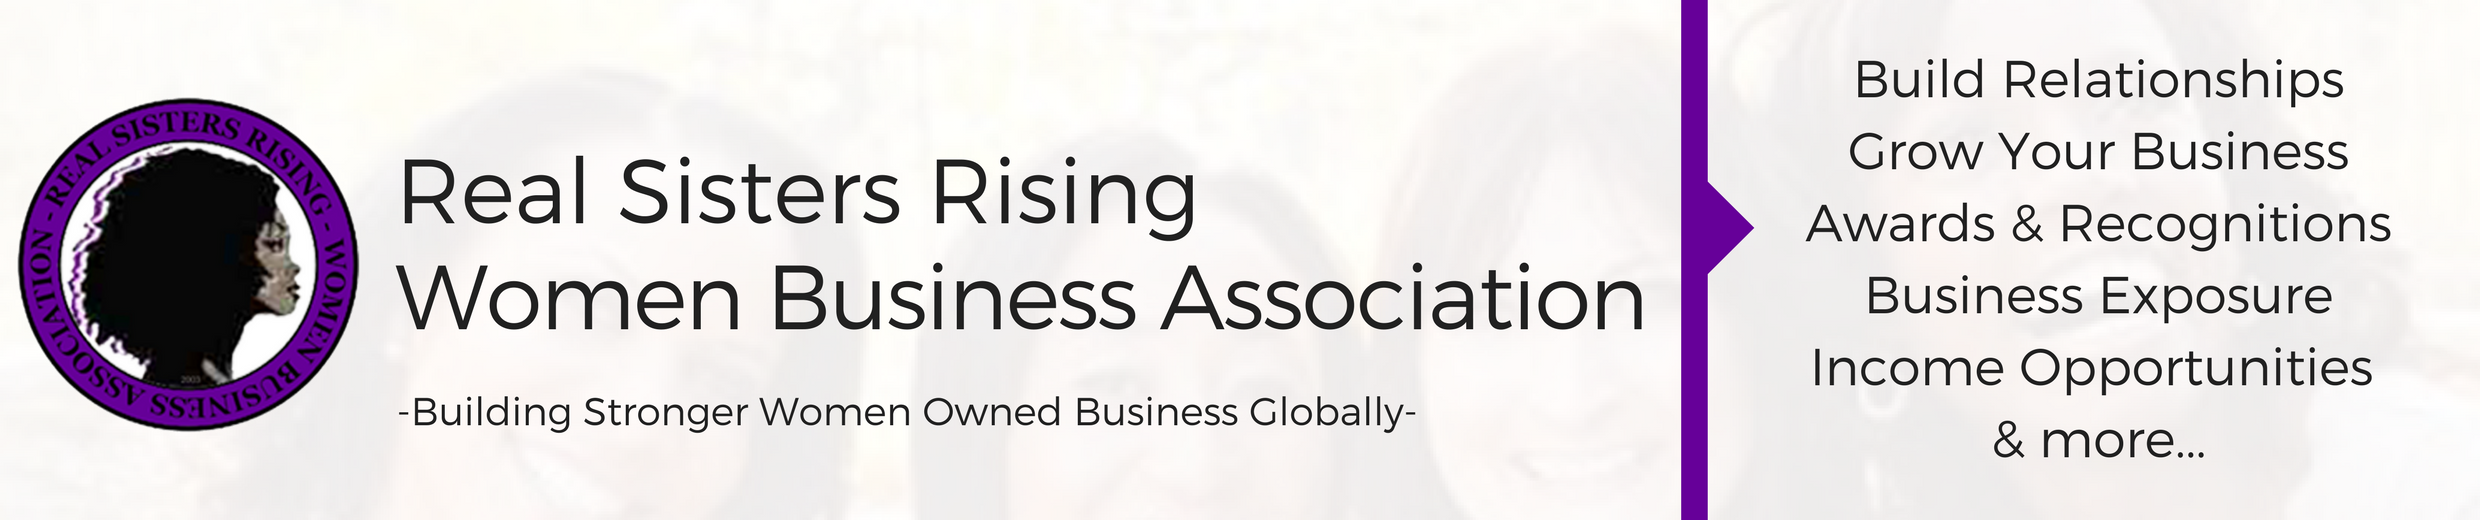 Real Sisters Rising Women Business Association